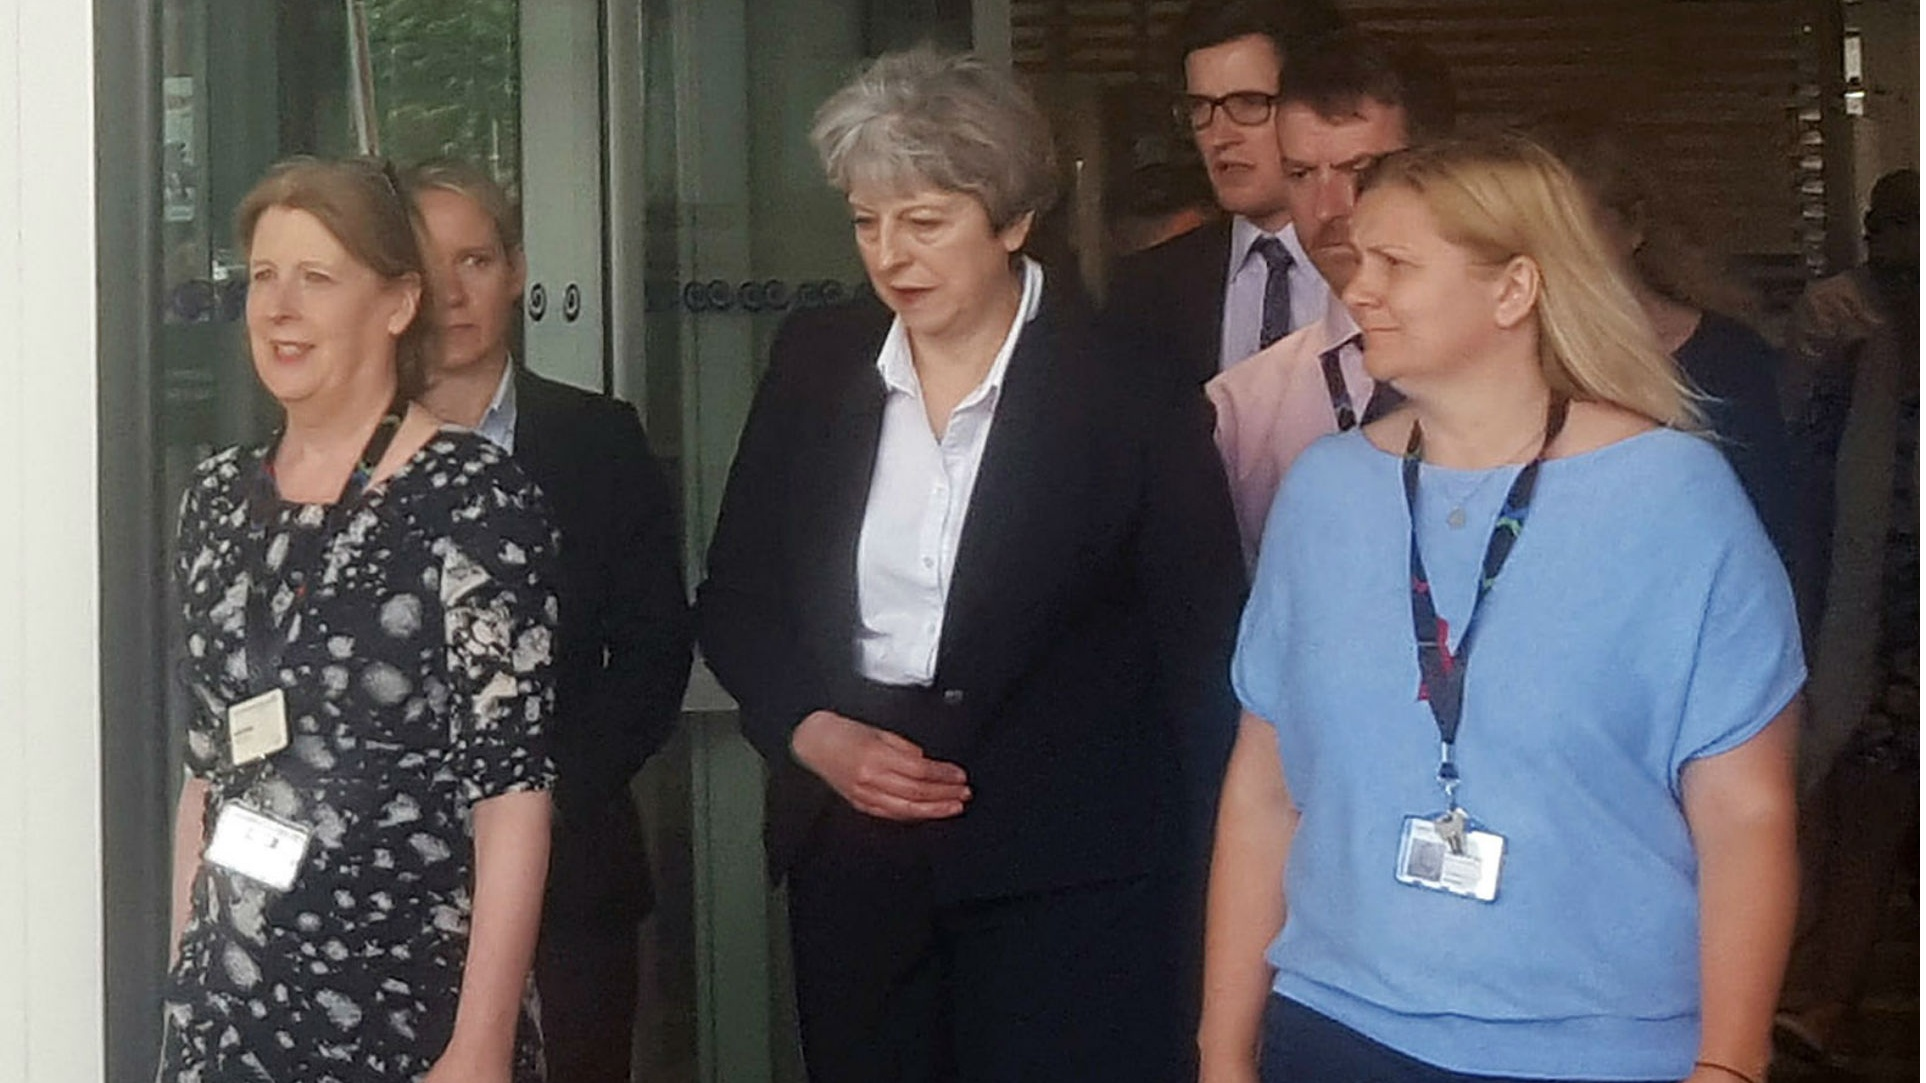 Andrea Leadsom confronted over PM not meeting Grenfell Tower victims